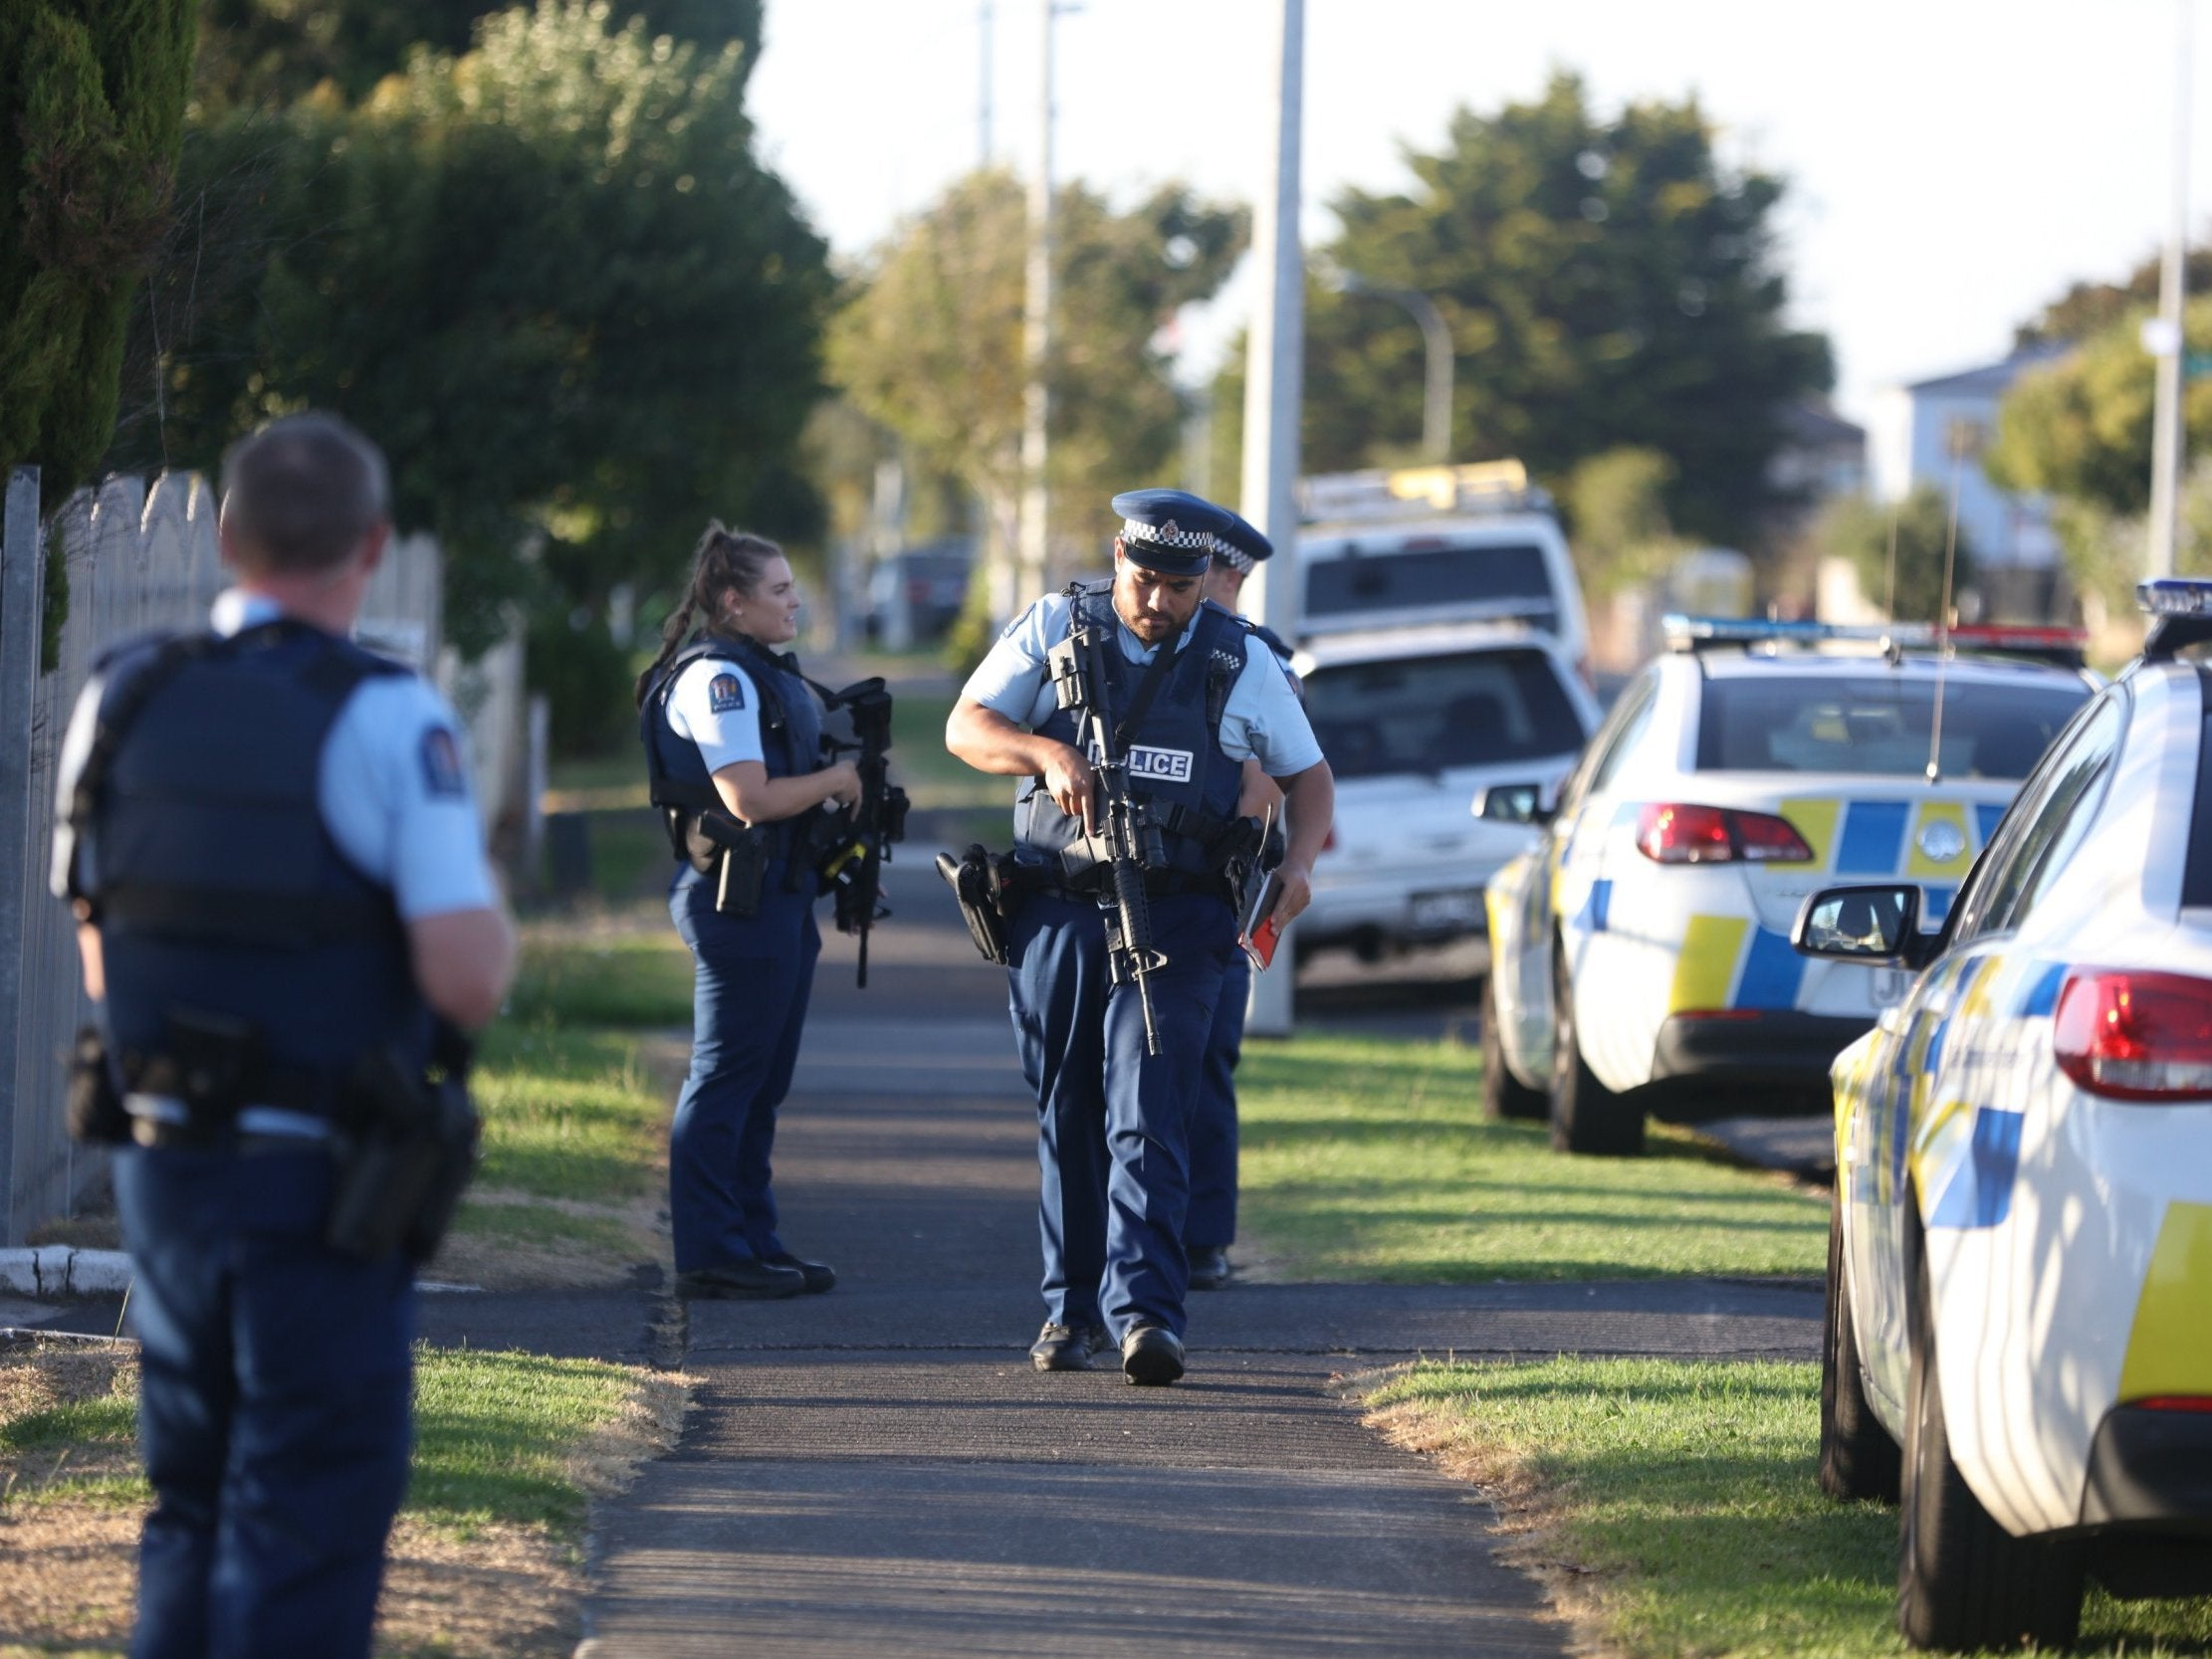 Shooting In Christchurch Picture: New Zealand Shooting: Video Shows Police Arresting